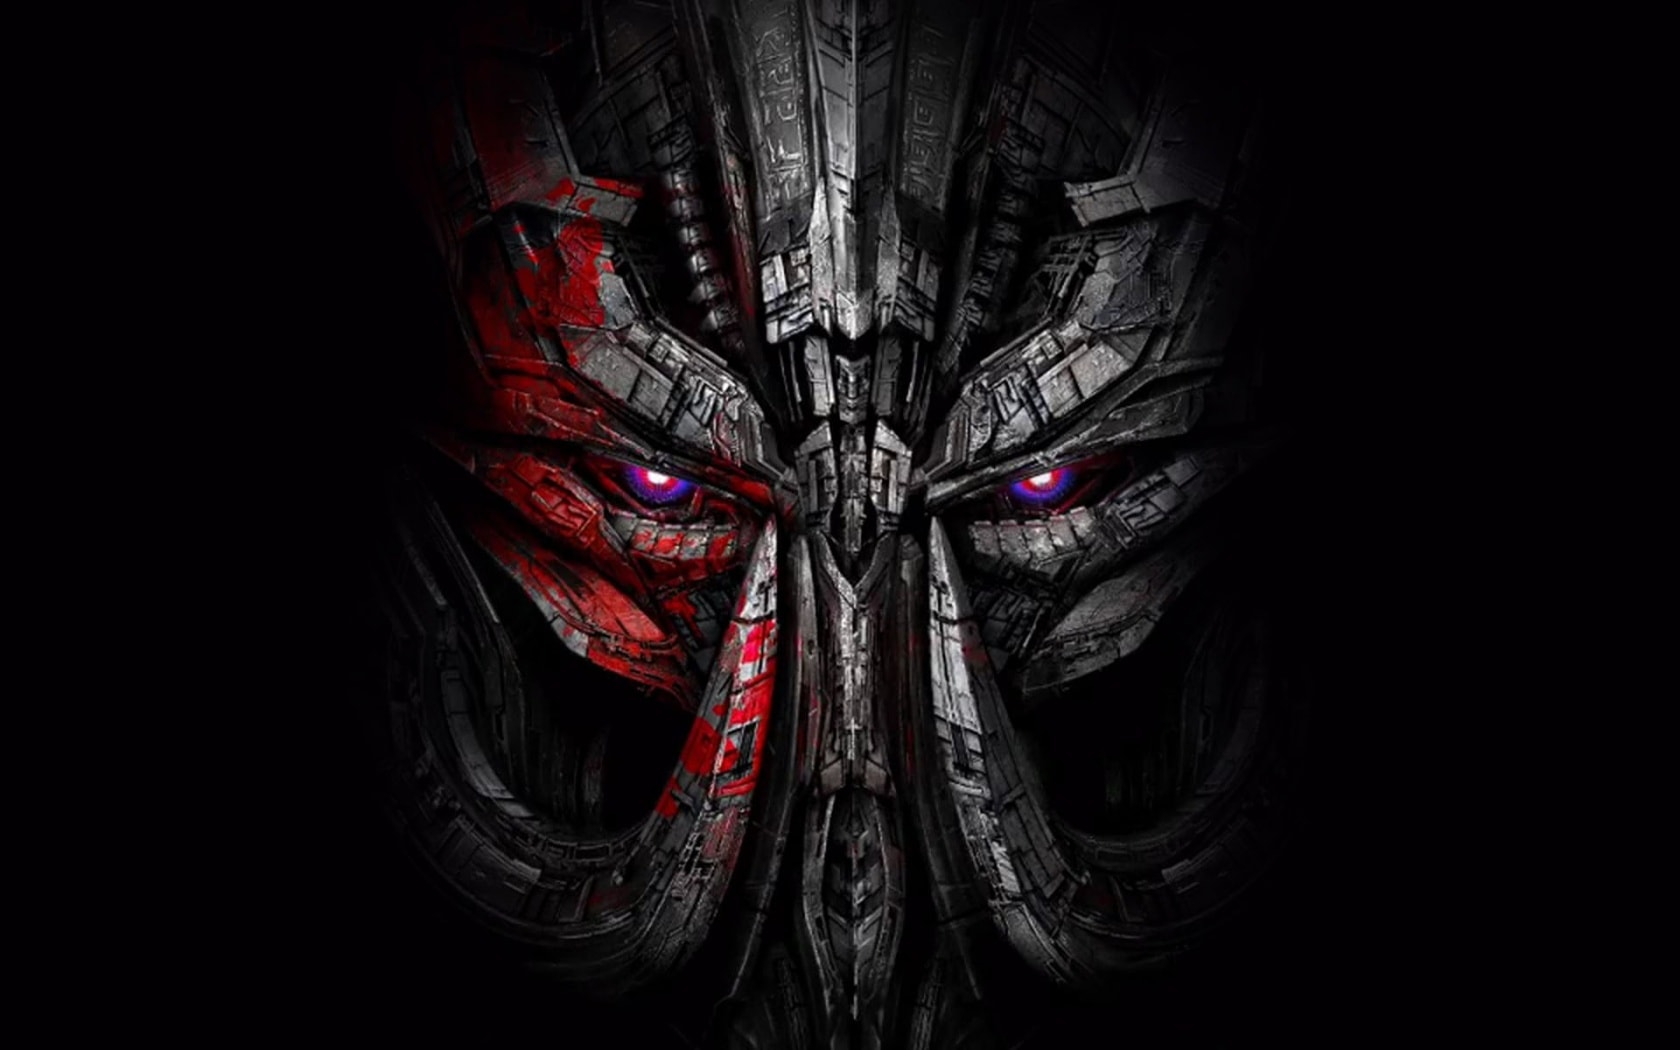 Transformers: The Last Knight Wallpapers hd